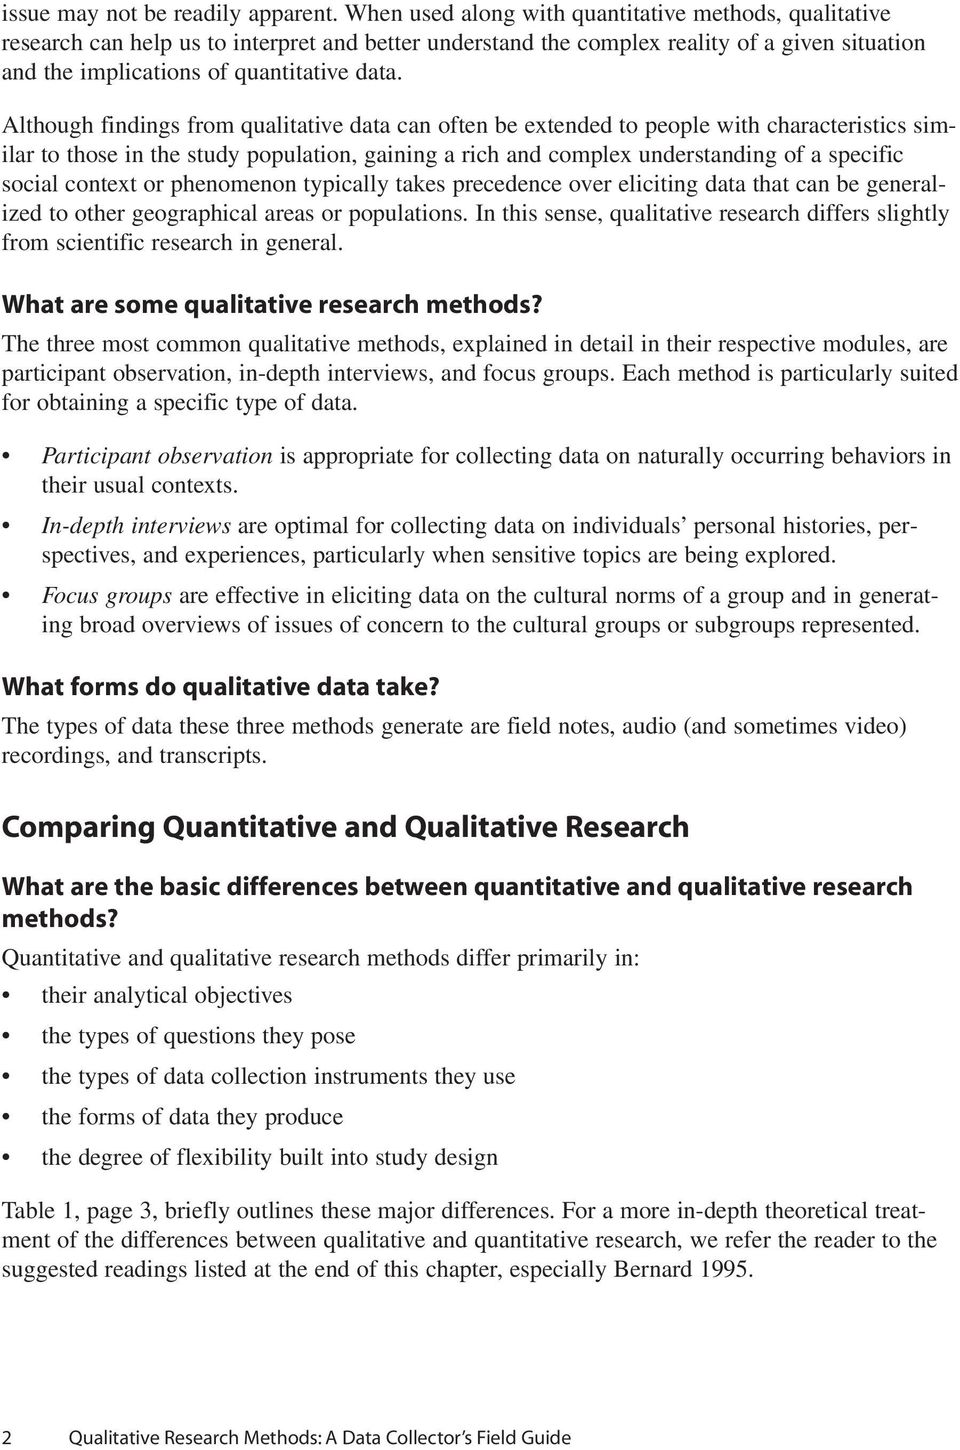 Although findings from qualitative data can often be extended to people with characteristics similar to those in the study population, gaining a rich and complex understanding of a specific social